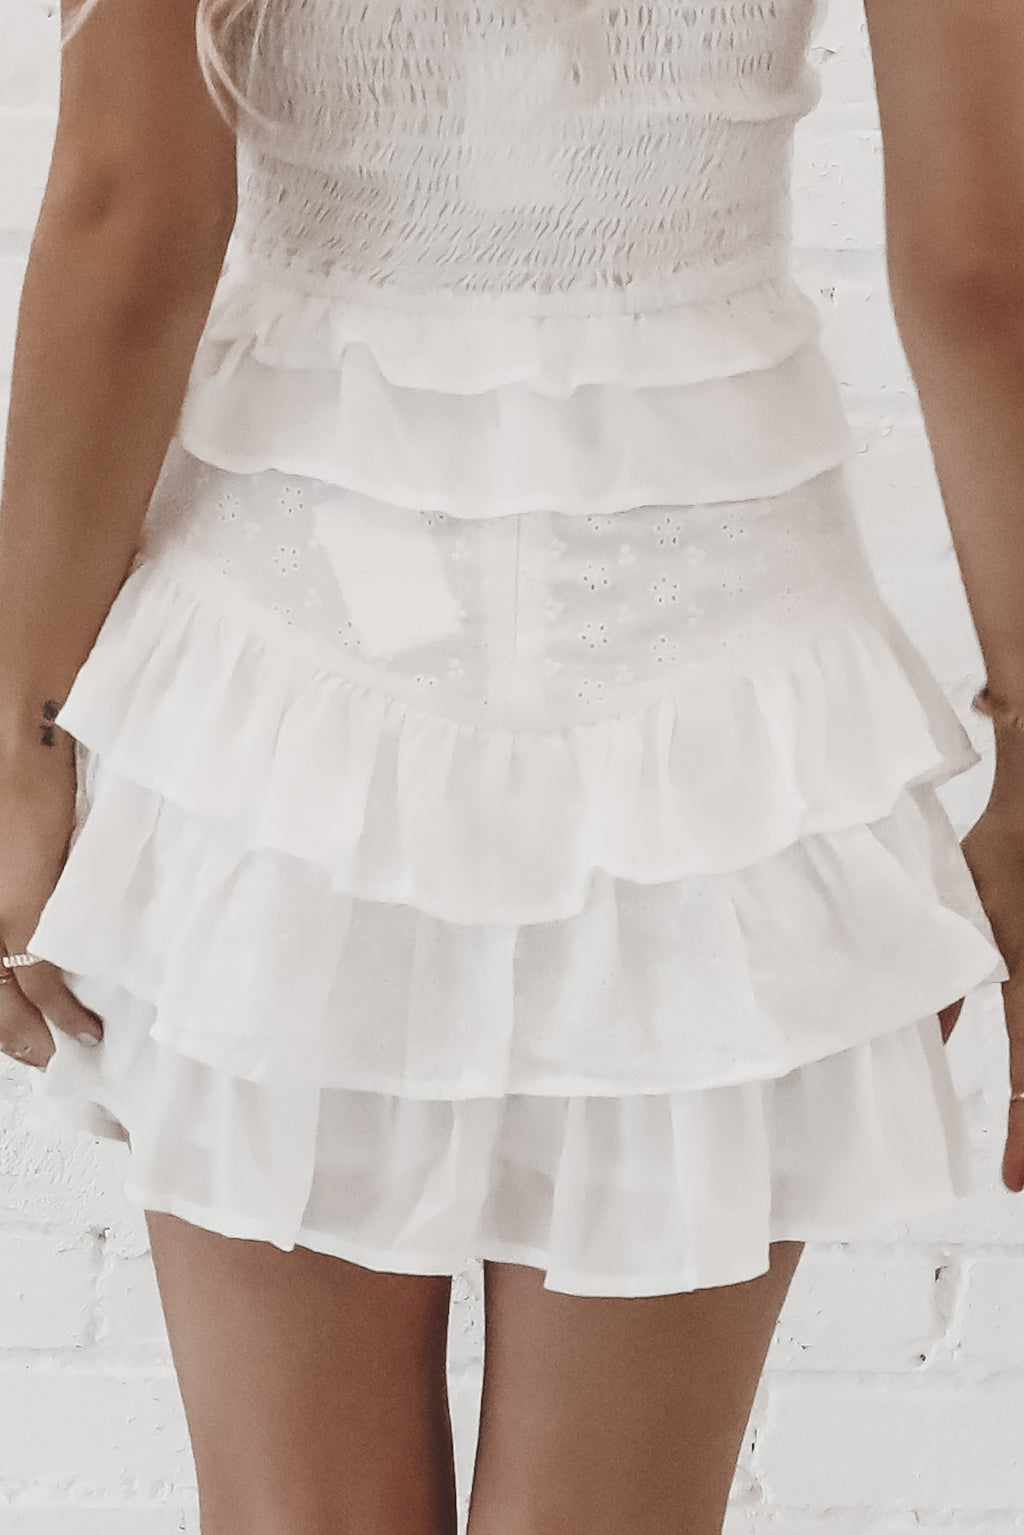 Lost In The Memories White Mini Skirt